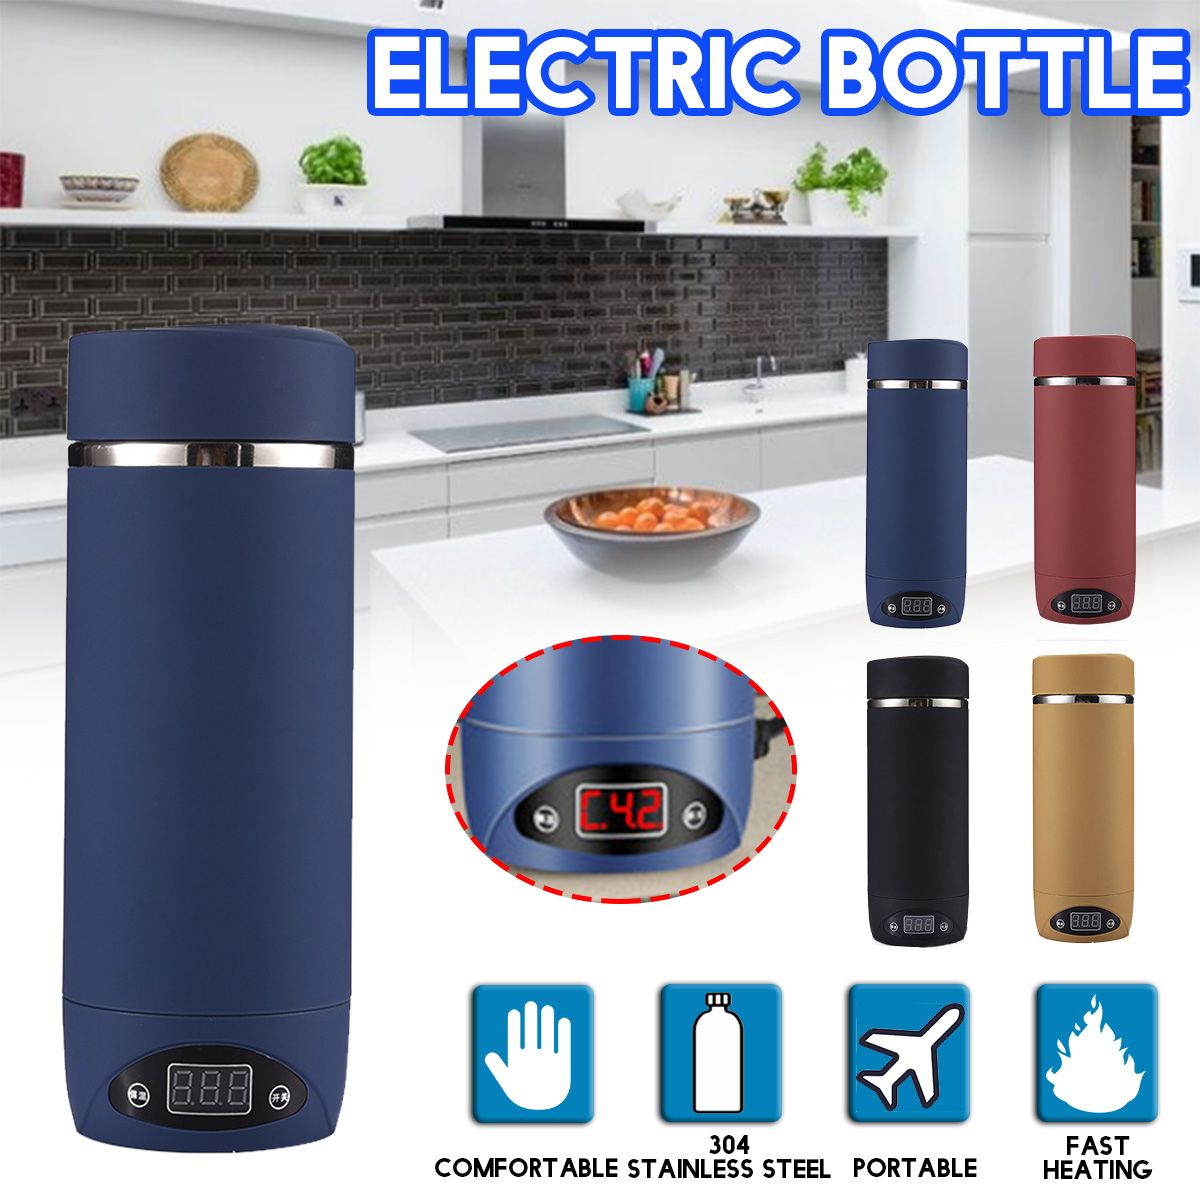 440ml Portable Travel Car Electric Heating Cup 304 Stainless Steel Water Kettle Coffee Tea Milk Heated Soaked Noodles Boiler Cup